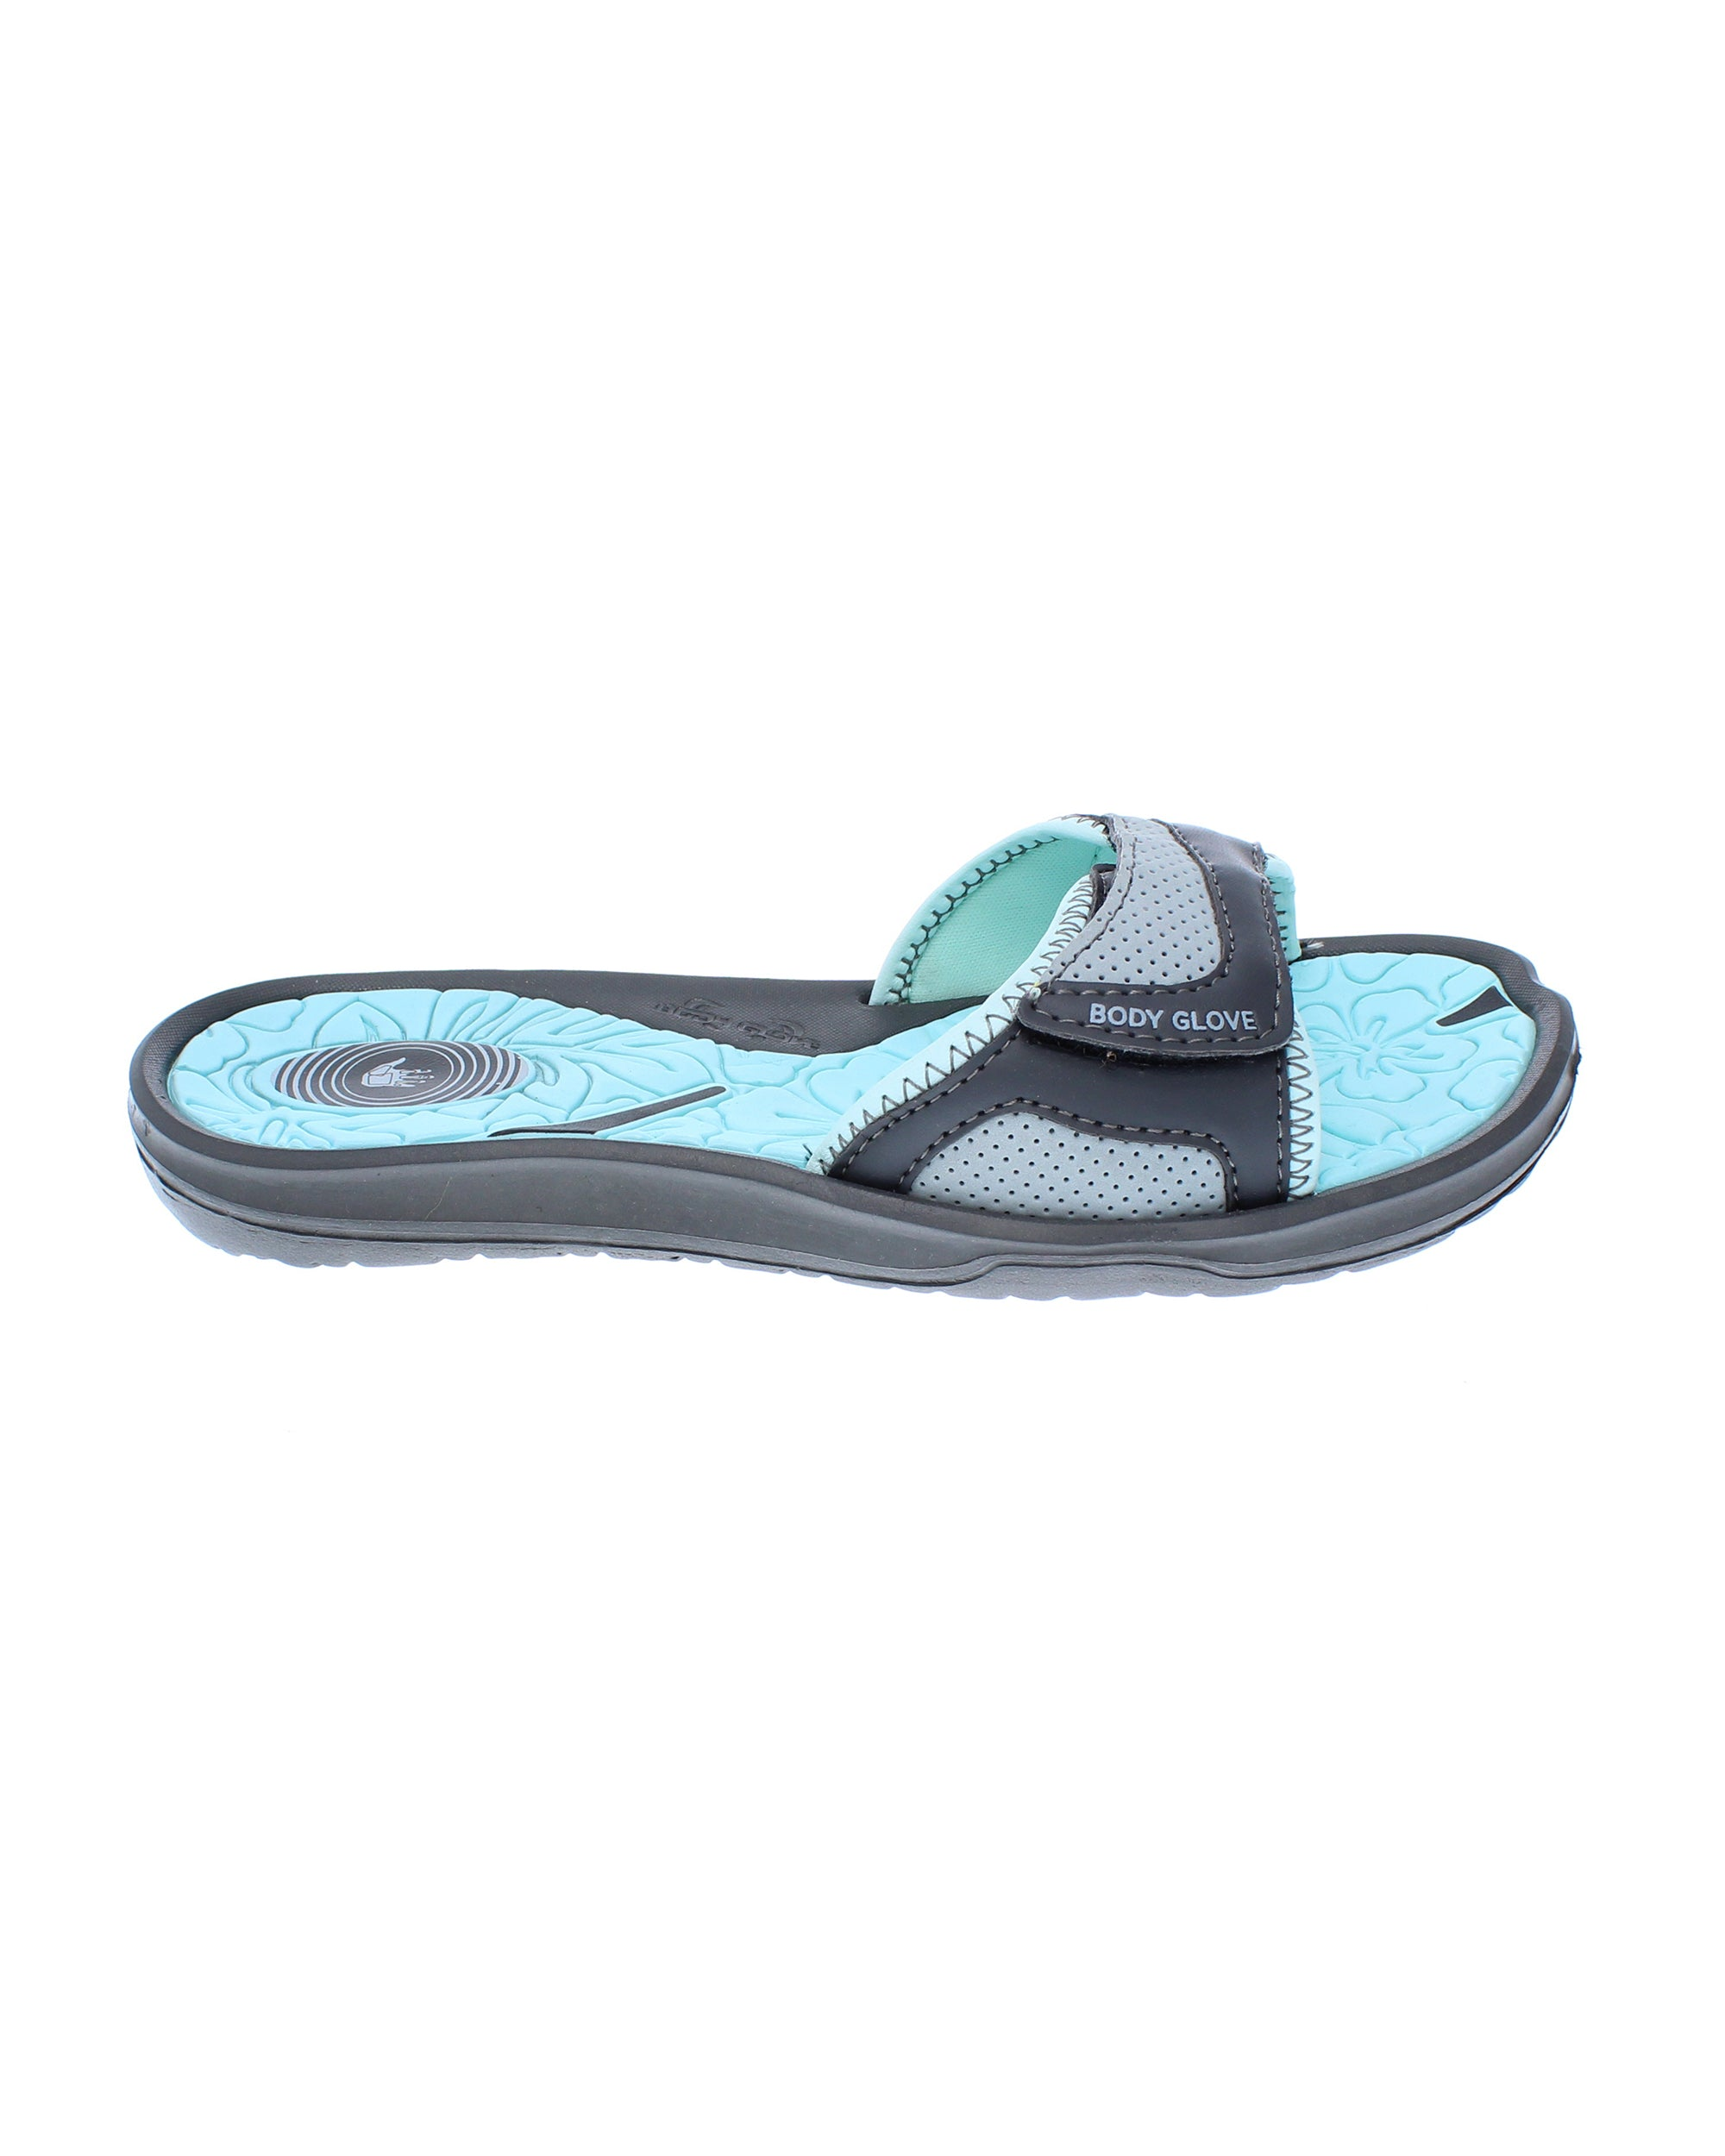 Women's Prima Sandals - Dark Shadow/Glacier Mint